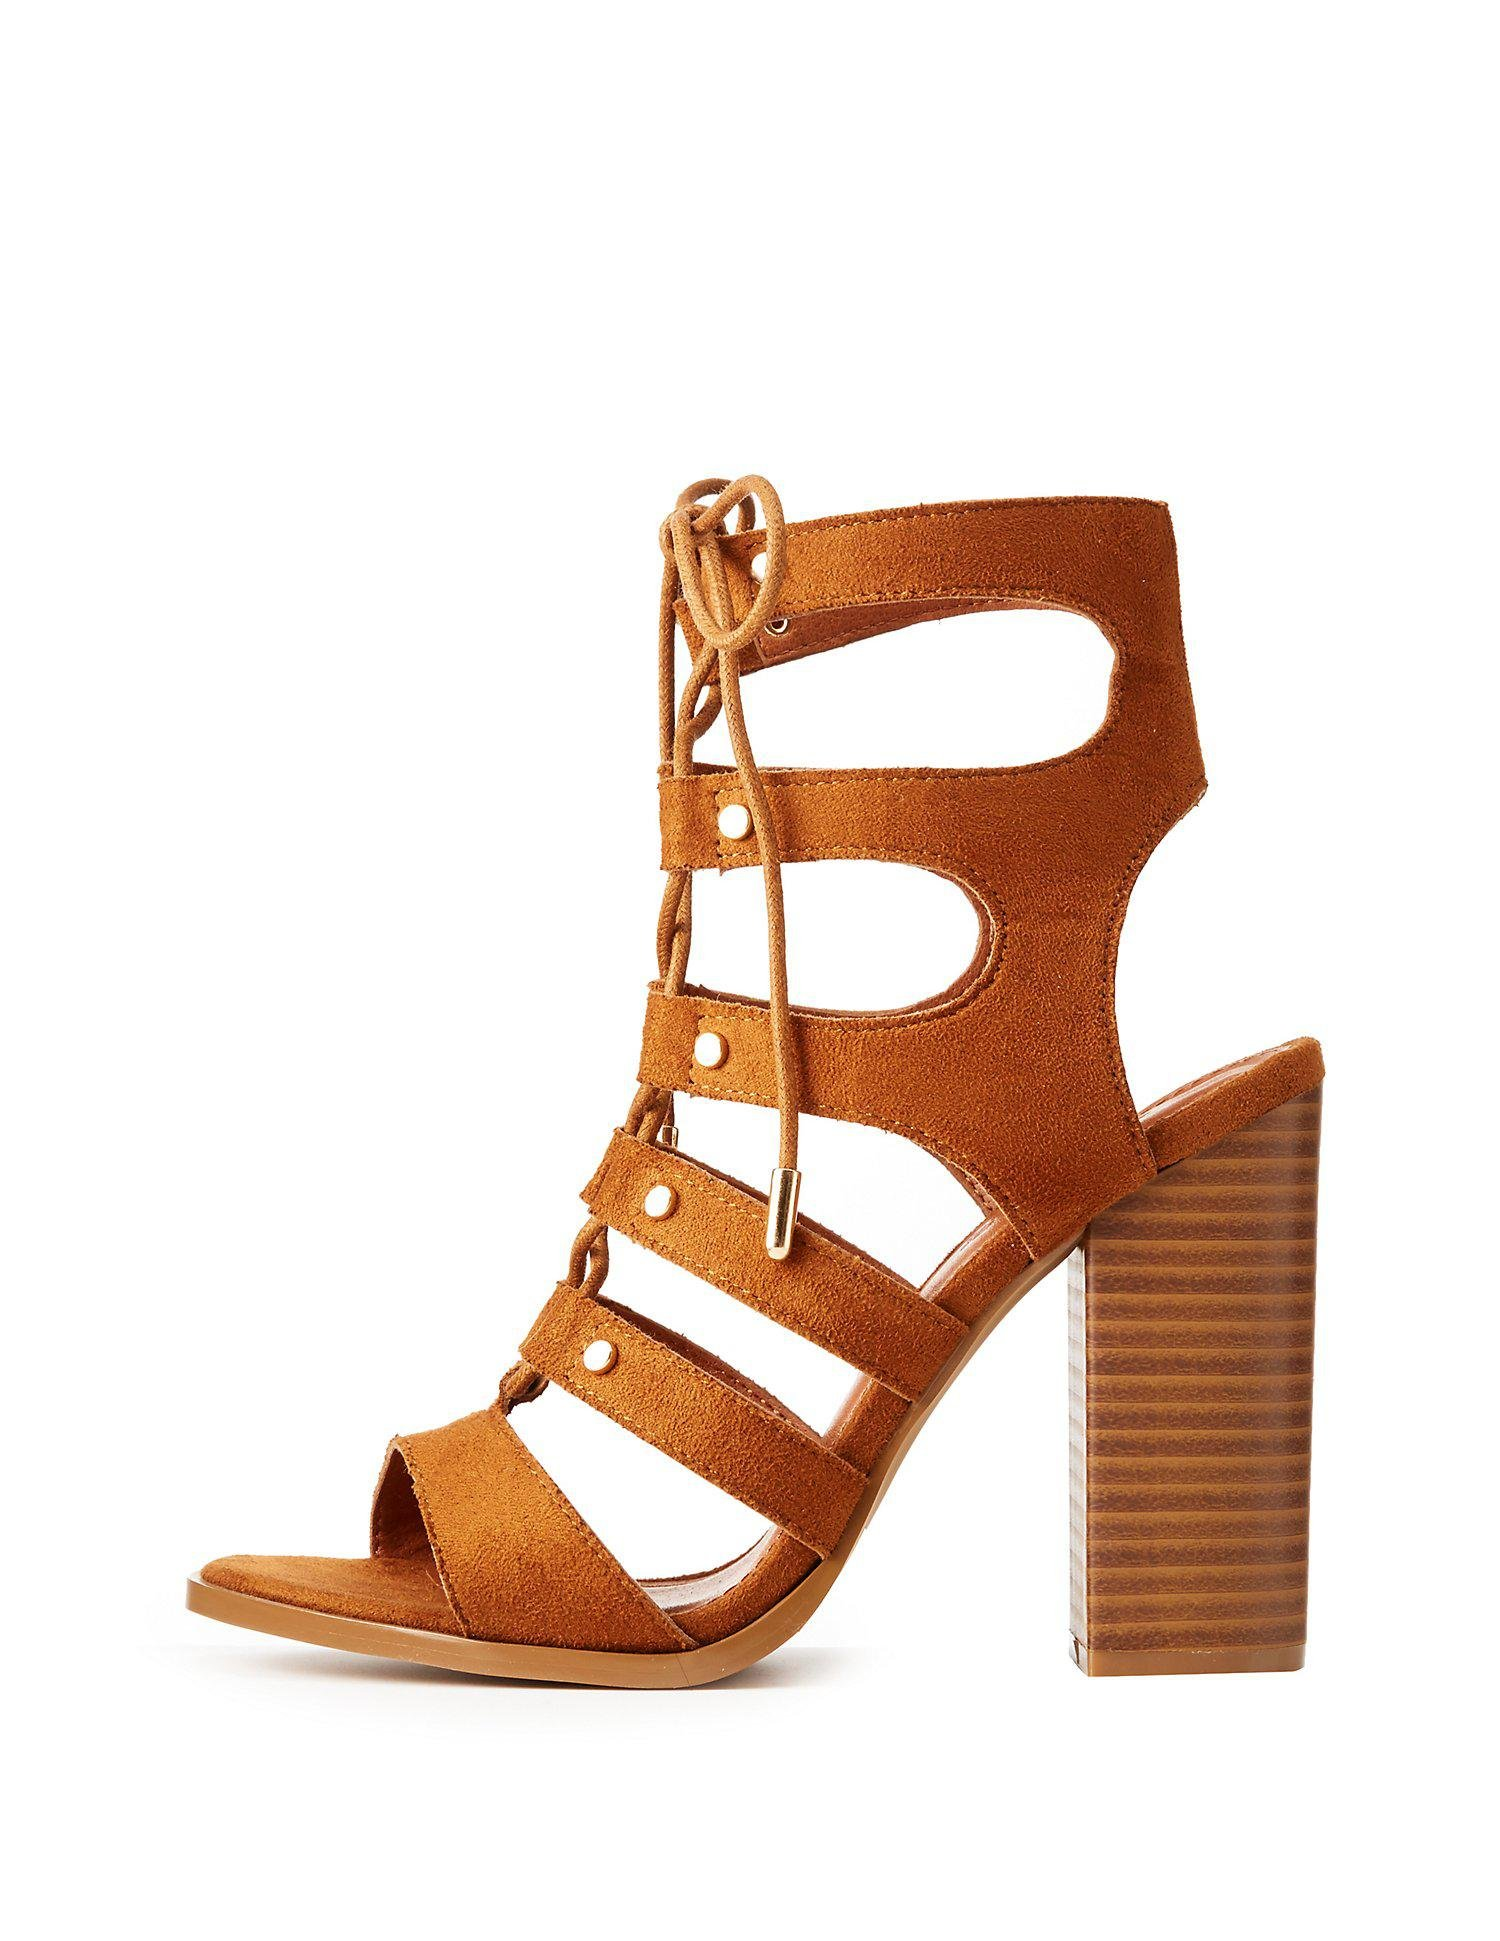 b8603e0fae5 Lyst - Charlotte Russe Lace-up Gladiator Sandals in Brown - Save 24%